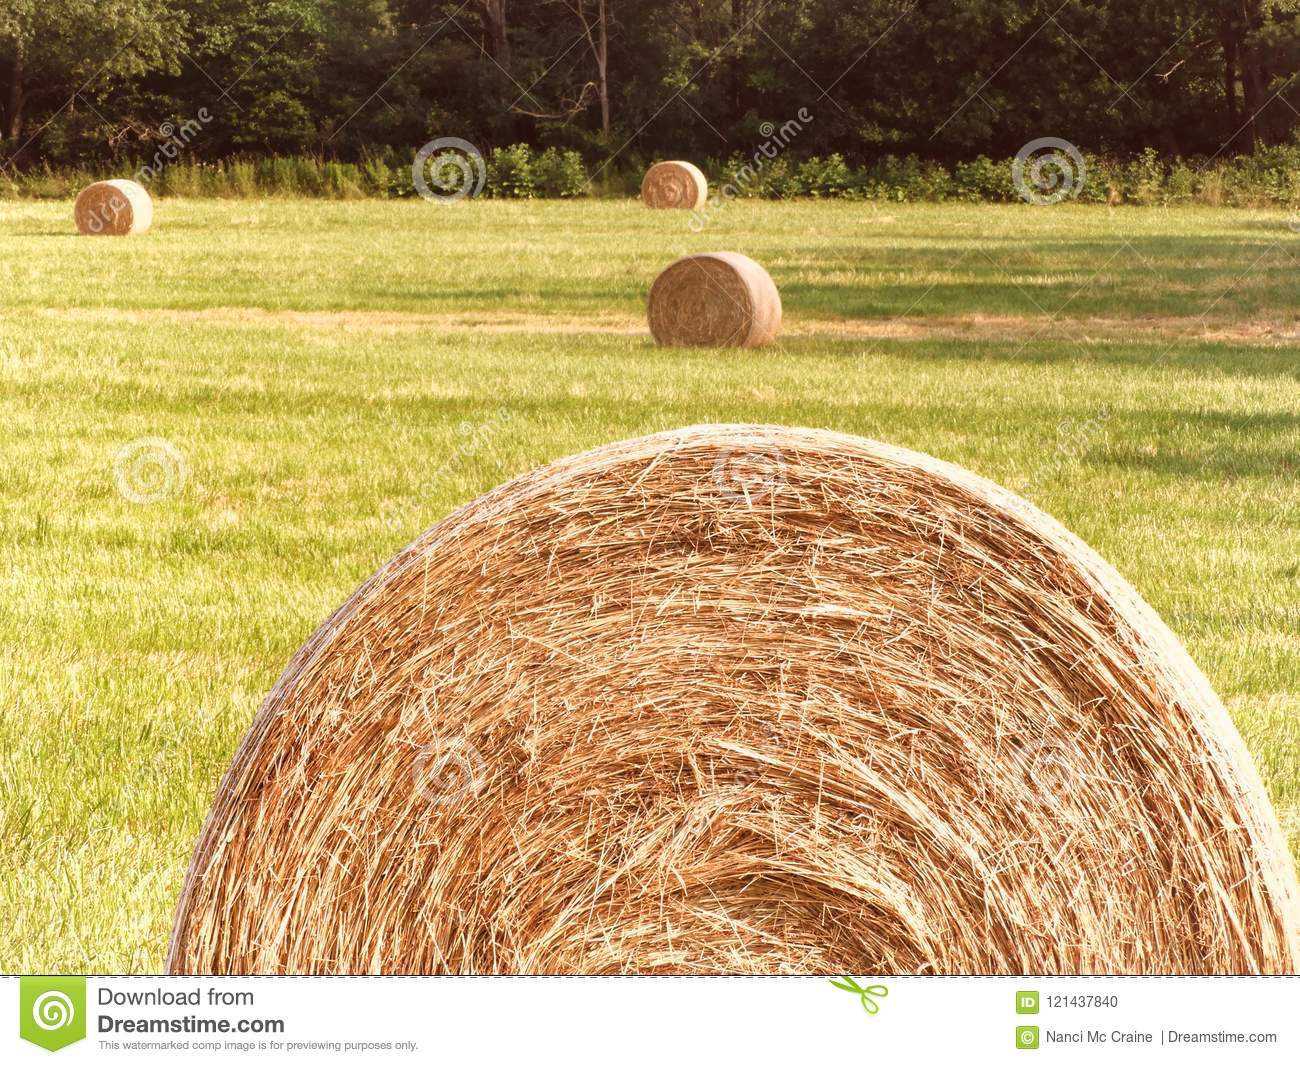 Round hay bales sit in newly cut hay field in FingerLakes NYS